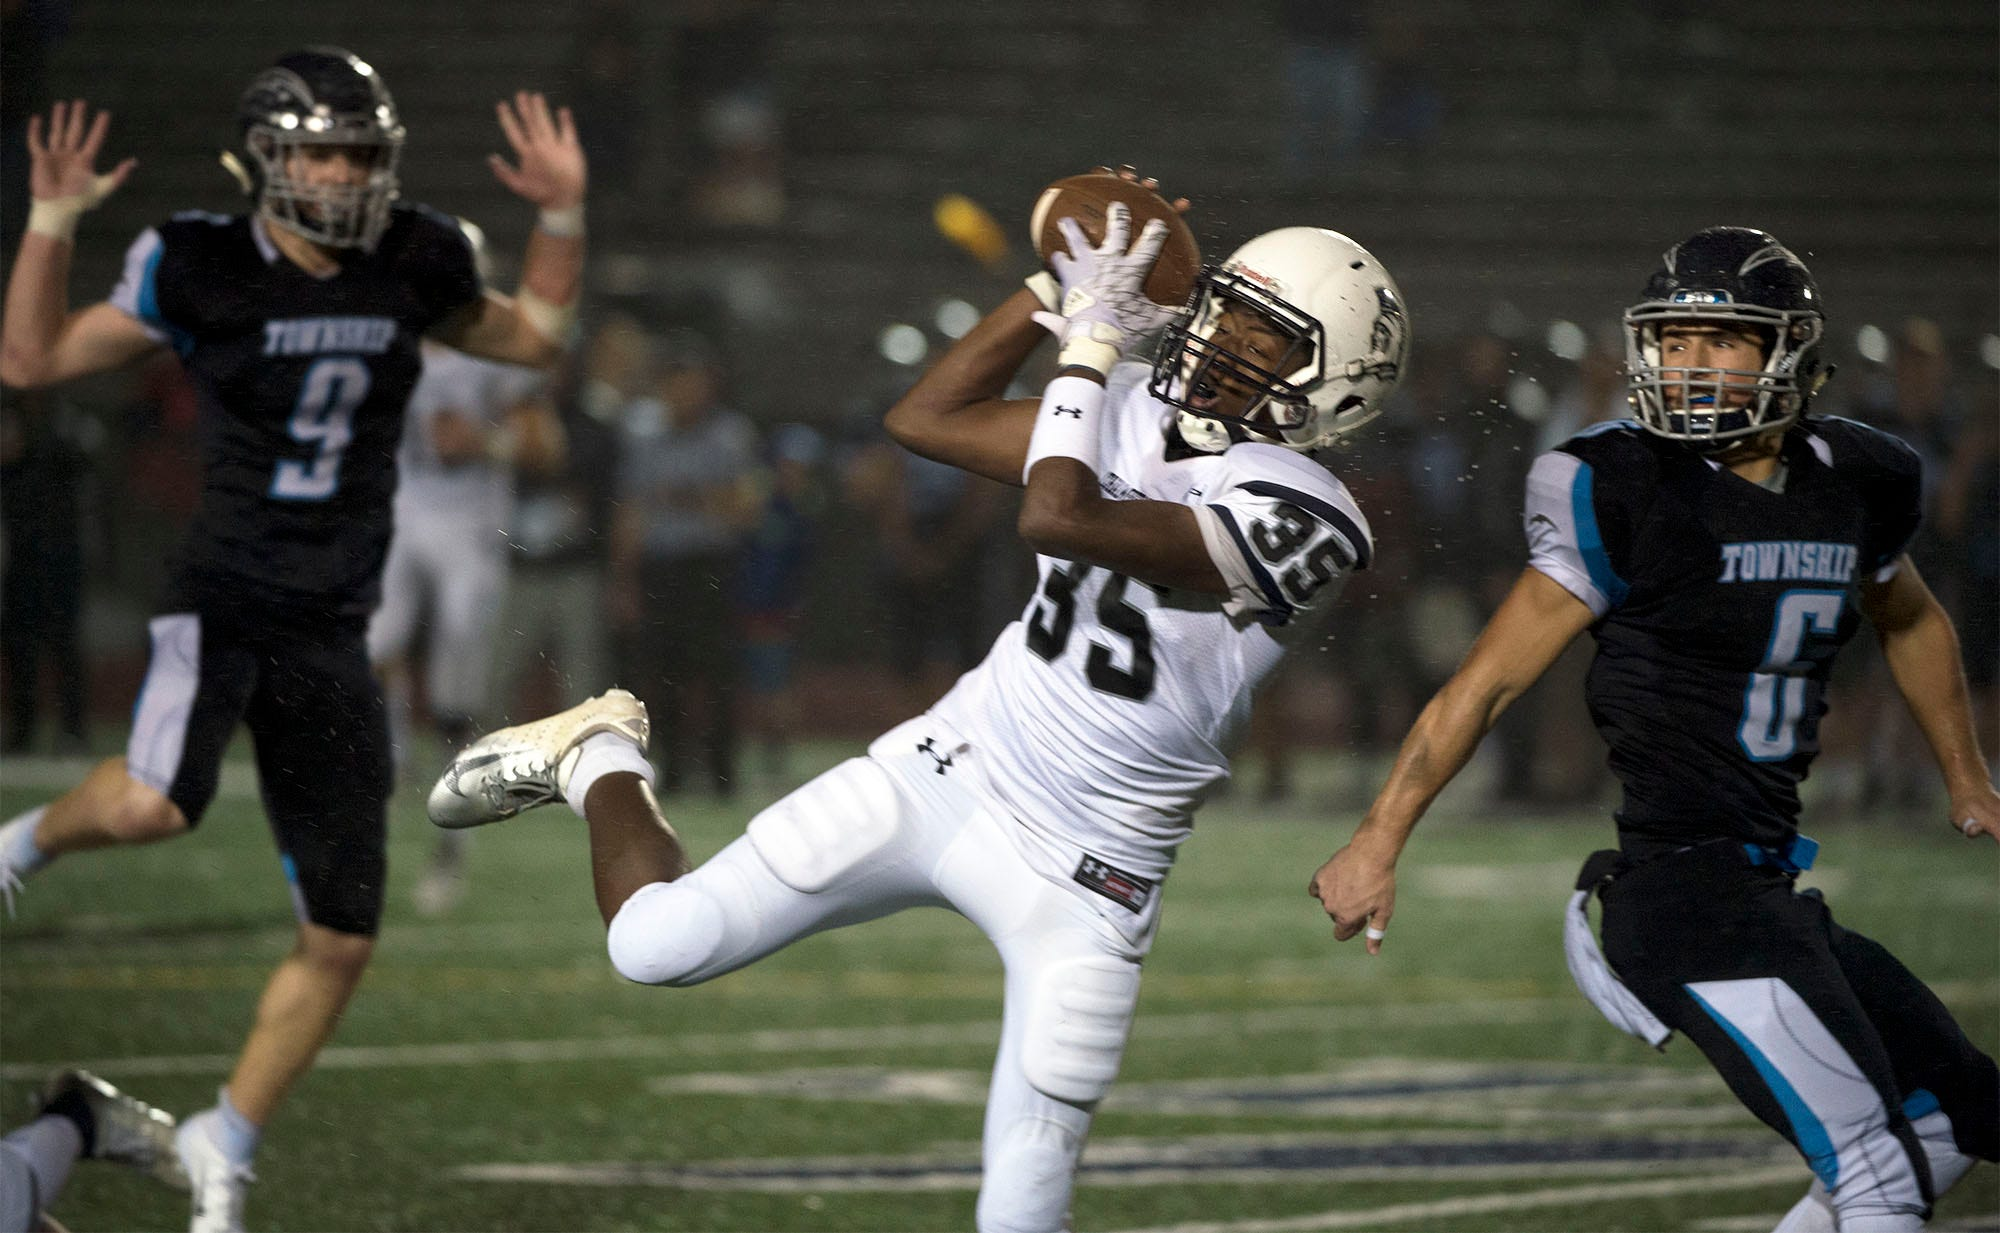 Chambersburg's DaQuan Rogers (35) catches a pass in front of Manheim Central's Brett Benjamin (6) and Jon Engel. Chambersburg Trojans dropped a close game 20-17 to Manheim Township Blue Streaks in the rain during PIAA District 3 playoff football on Friday, Nov. 2, 2018.